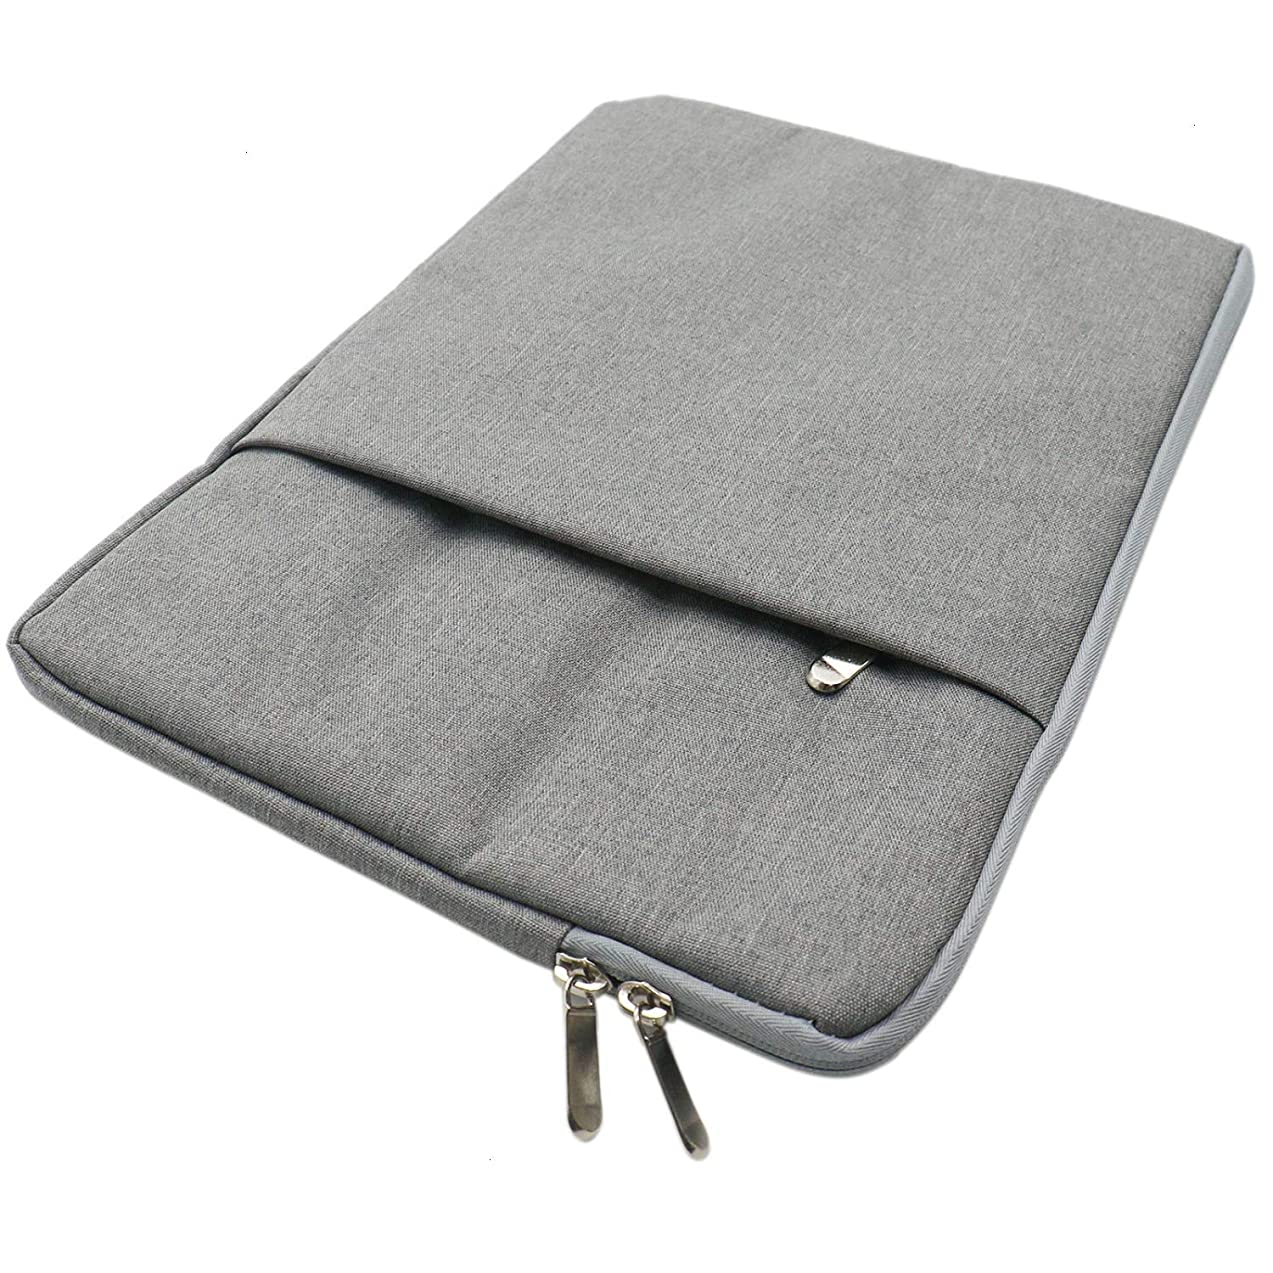 IDS 14X10X1.2 inch Waterproof Protective Case Resistant Bag for LED Light Pad Board A4 Tablet of 5D Diamond Painting Kit - Also Suit for MacBook Air Pro Laptop 13